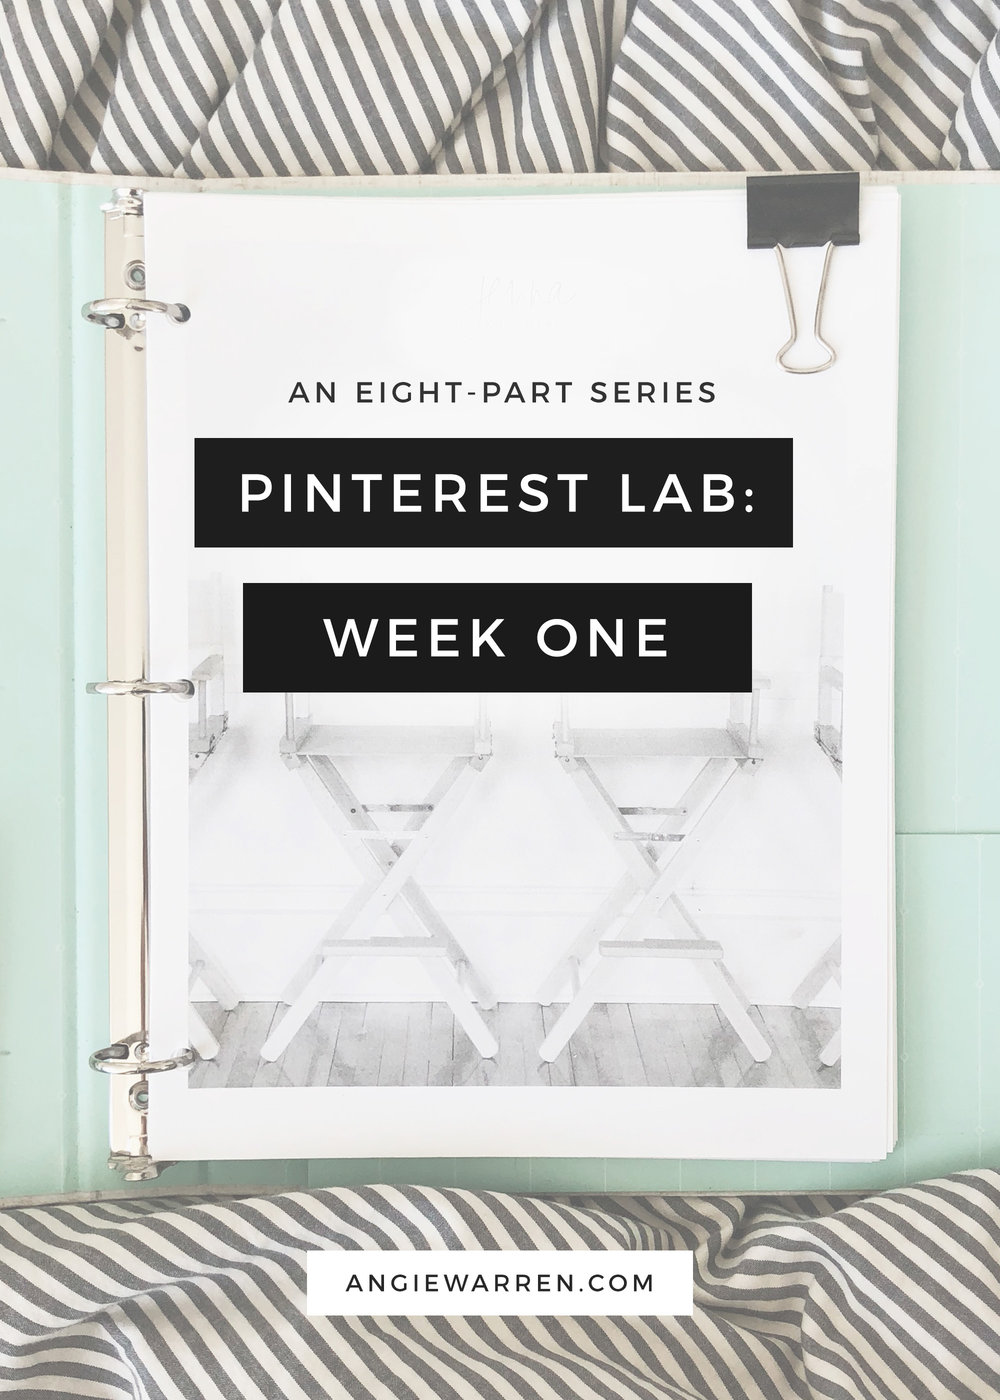 The Pinterest Lab - a Series - Angie Warren - www.angiewarren.com